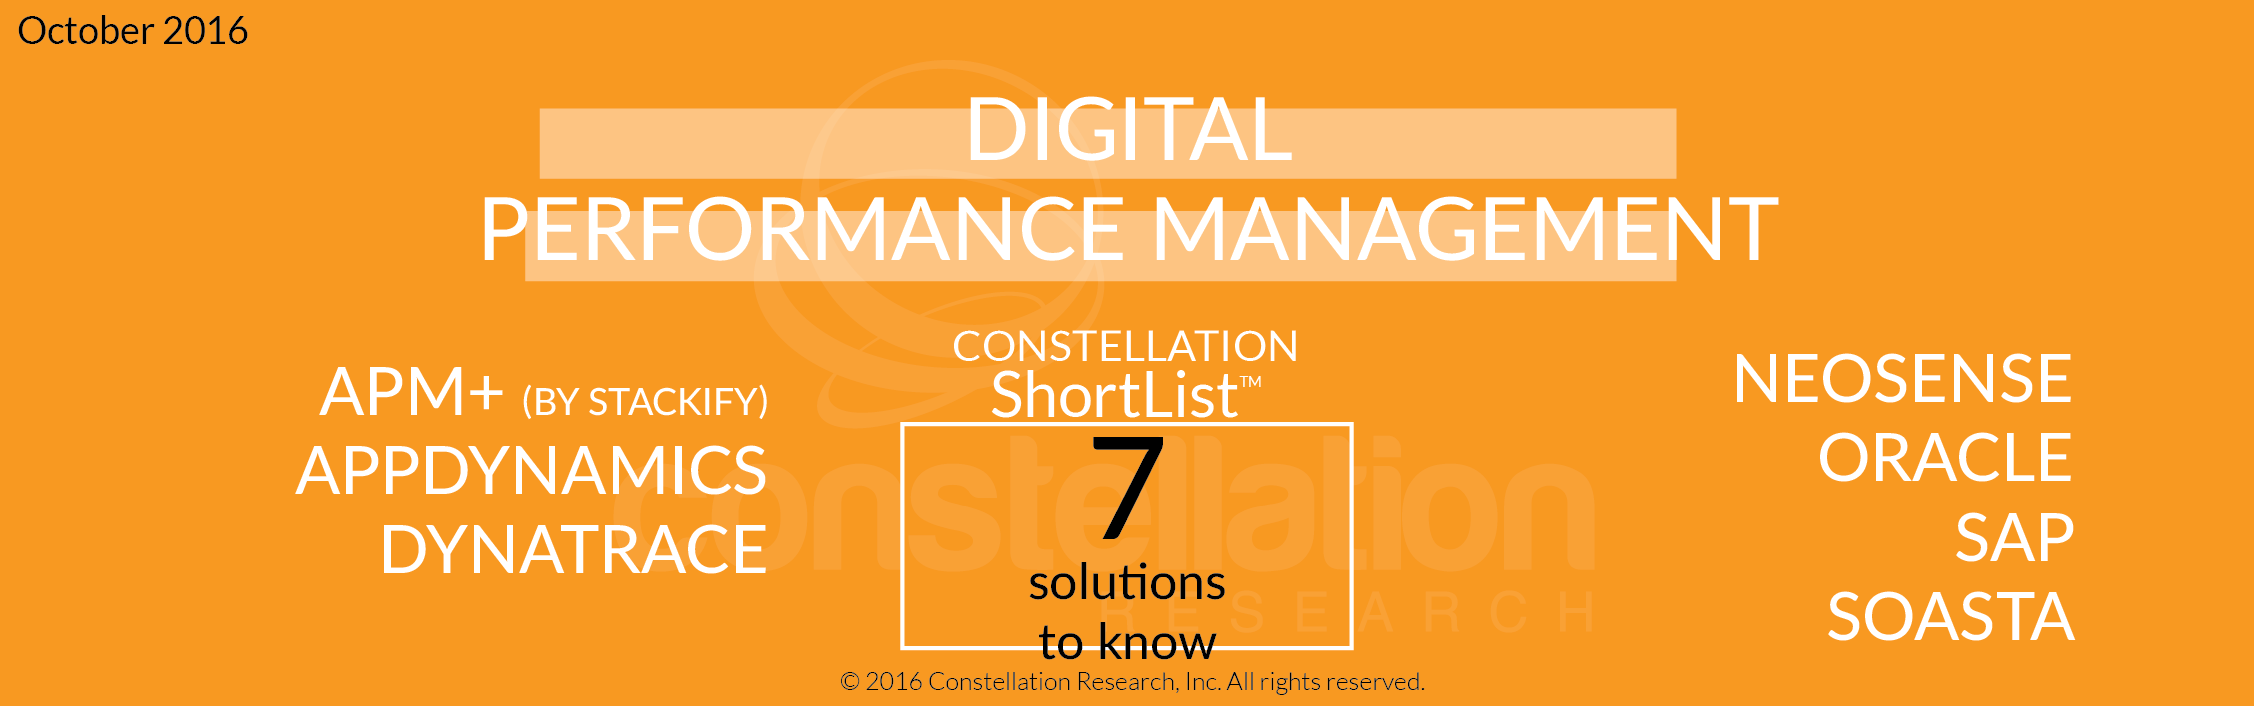 Constellation ShortList™ for Digital Performance Management